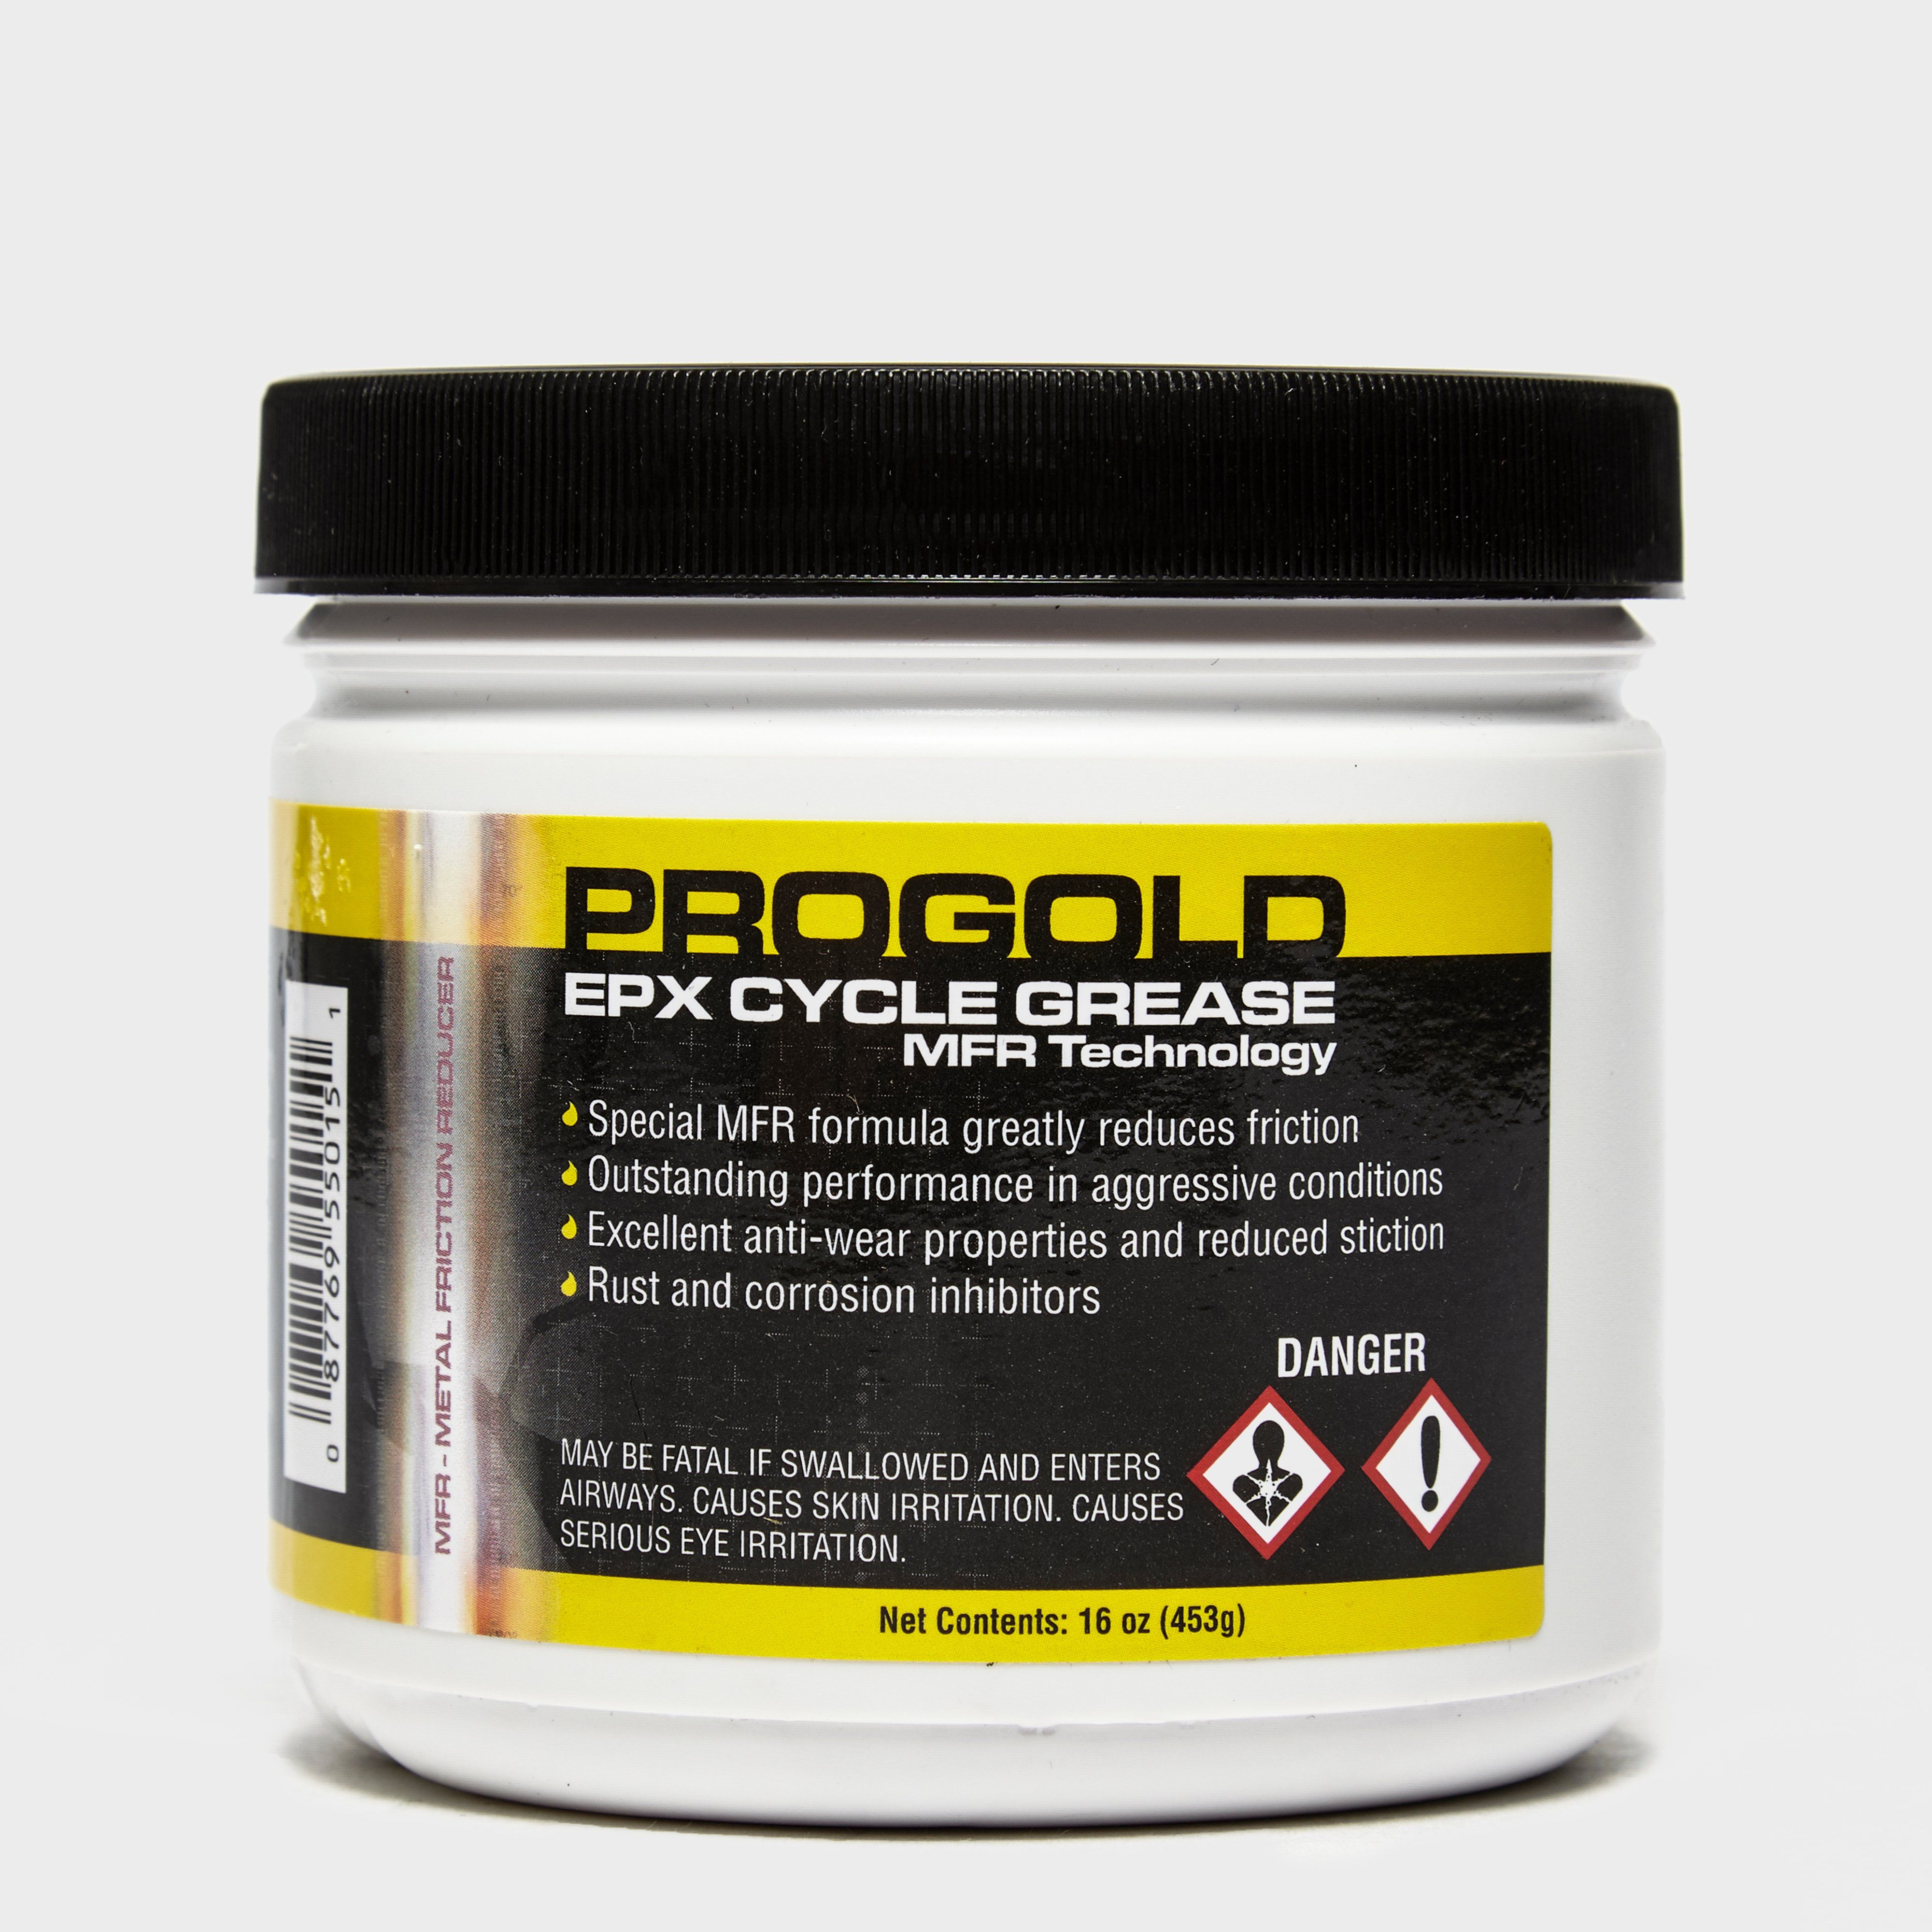 PROGOLD EPX Cycle Grease